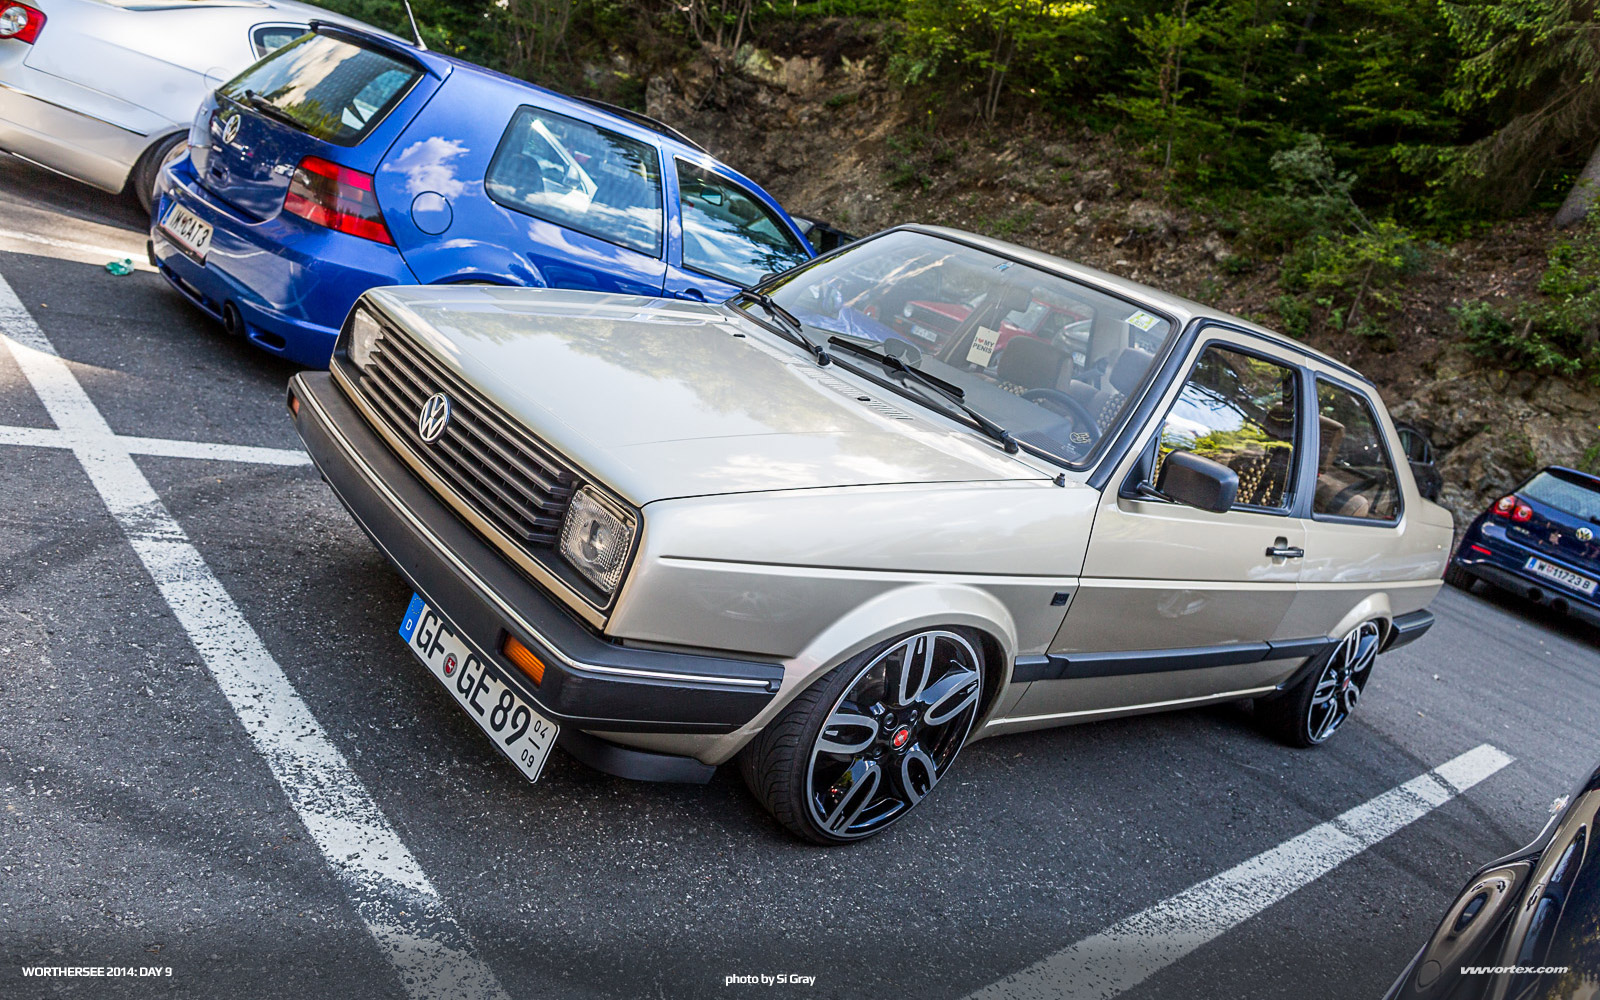 2014-Worthersee-Day-9-Si-Gray-406